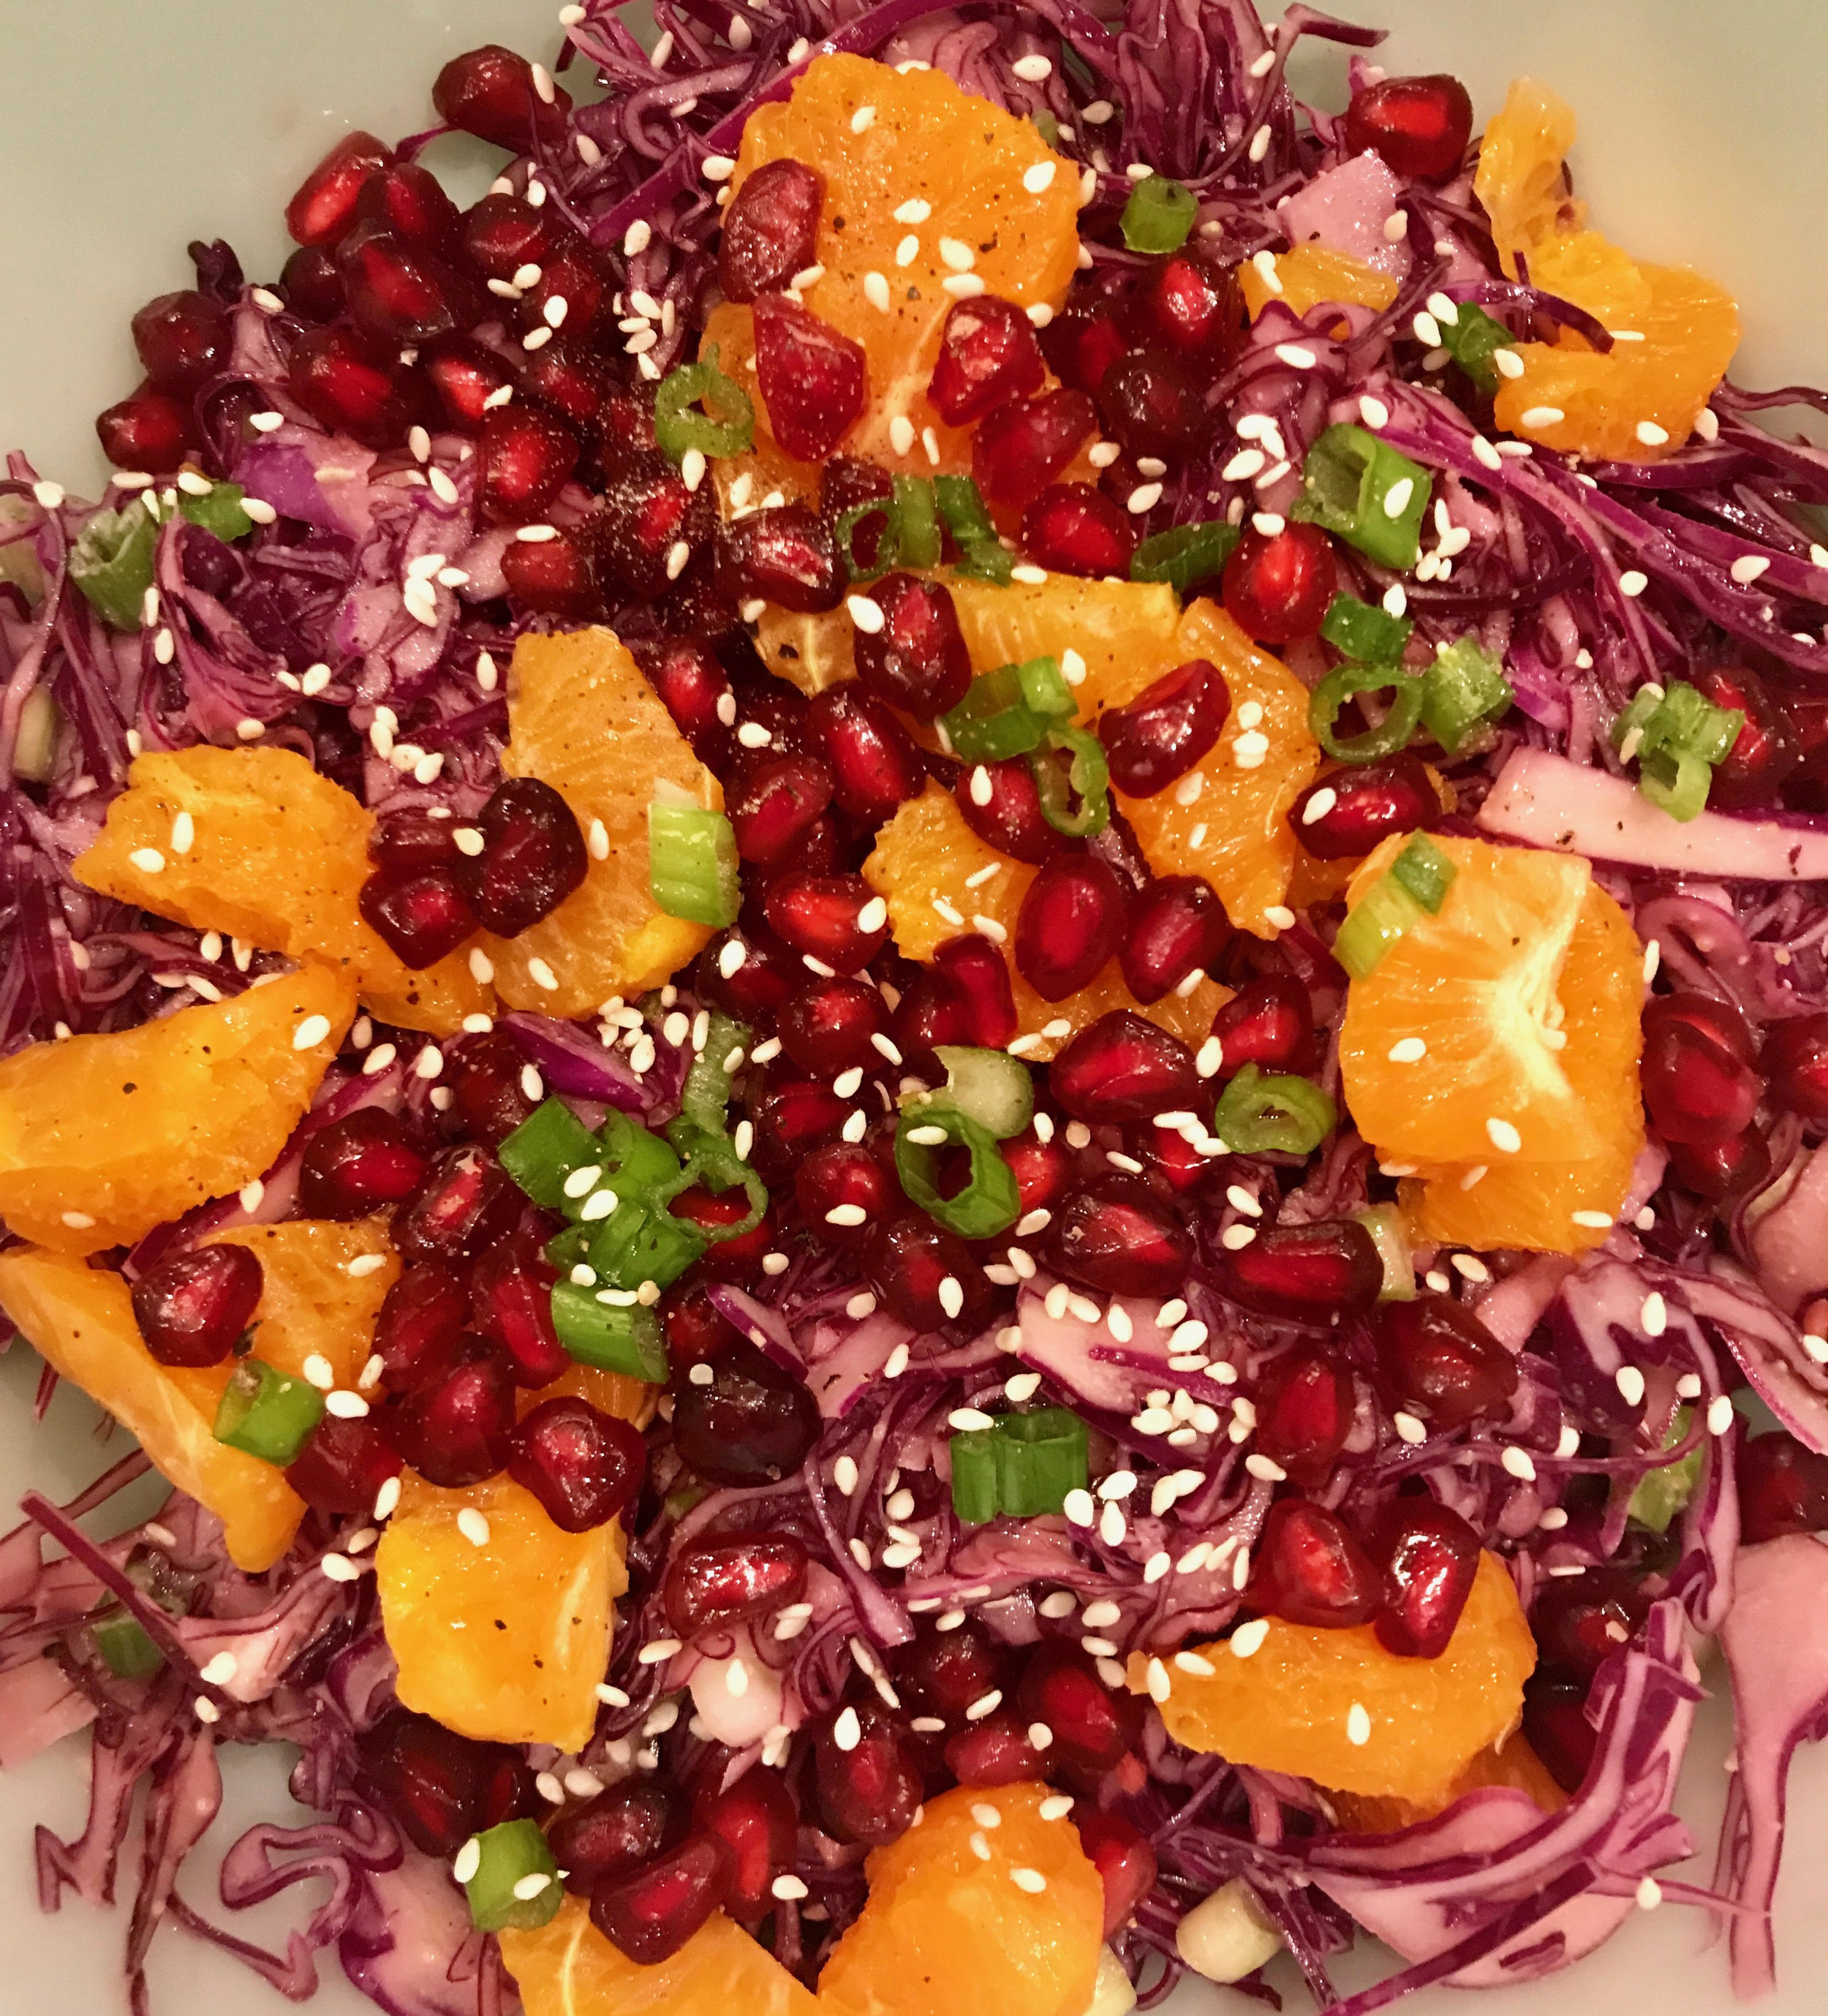 Red Cabbage Salad with Spicy Peanut Vinaigrette